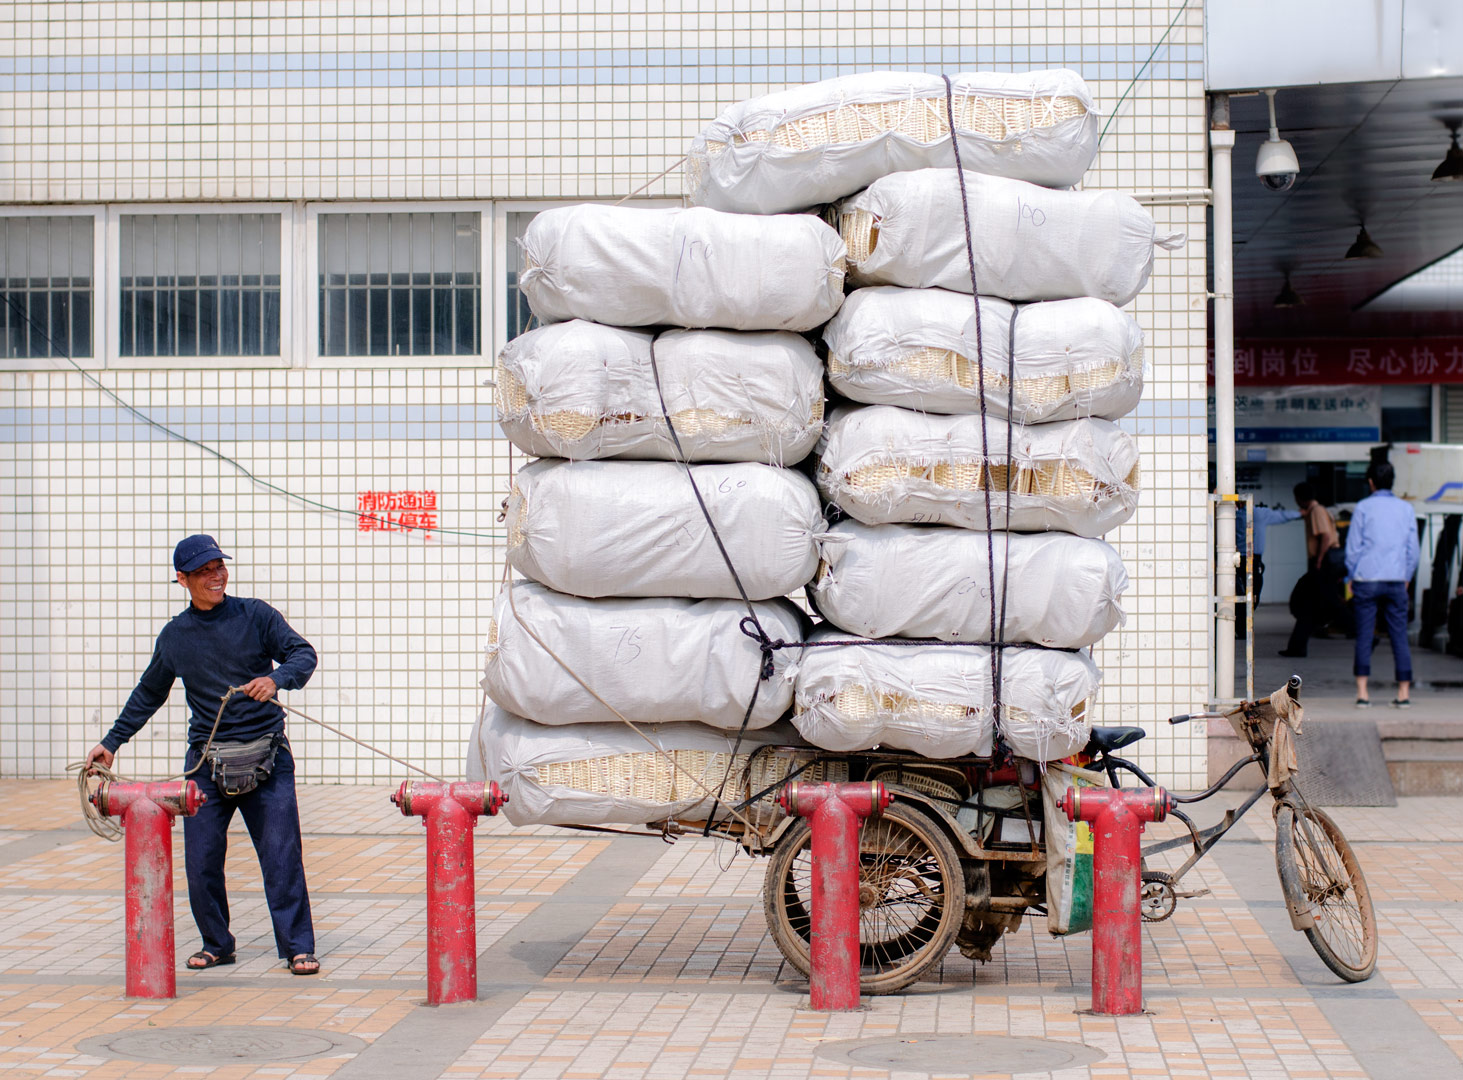 A Chinese man ties huge bags on top of his already overloaded bike rickshaw.